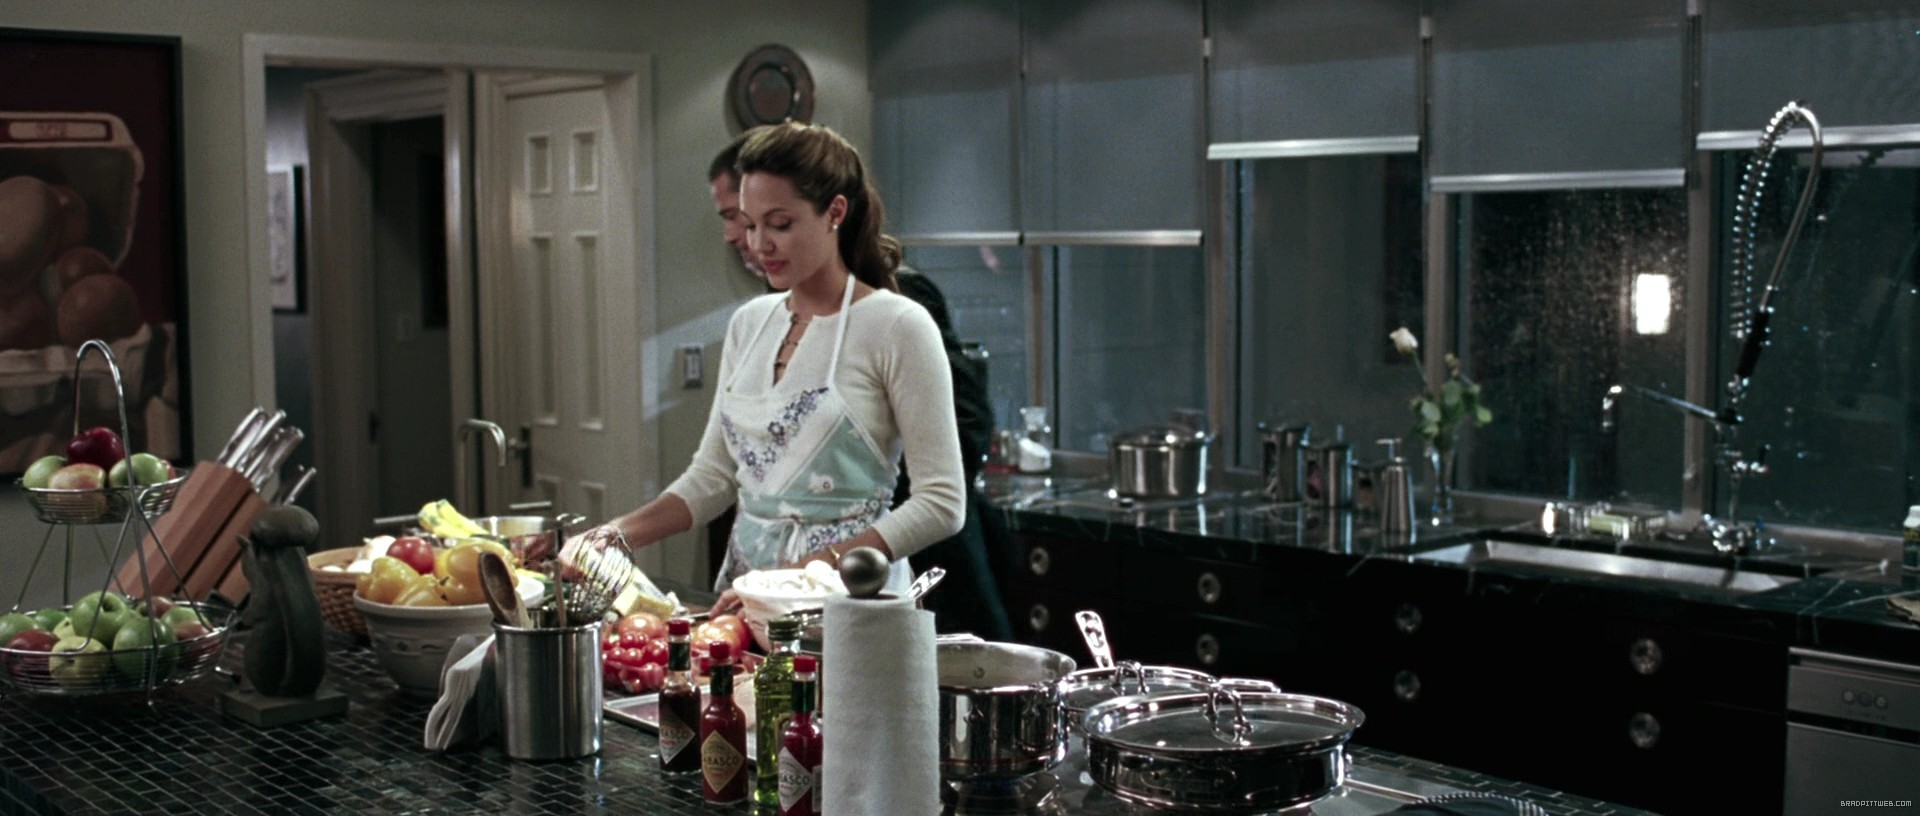 Mr And Mrs Smith Kitchen screen captures (bluray) - mr-and-ms-smith-0179